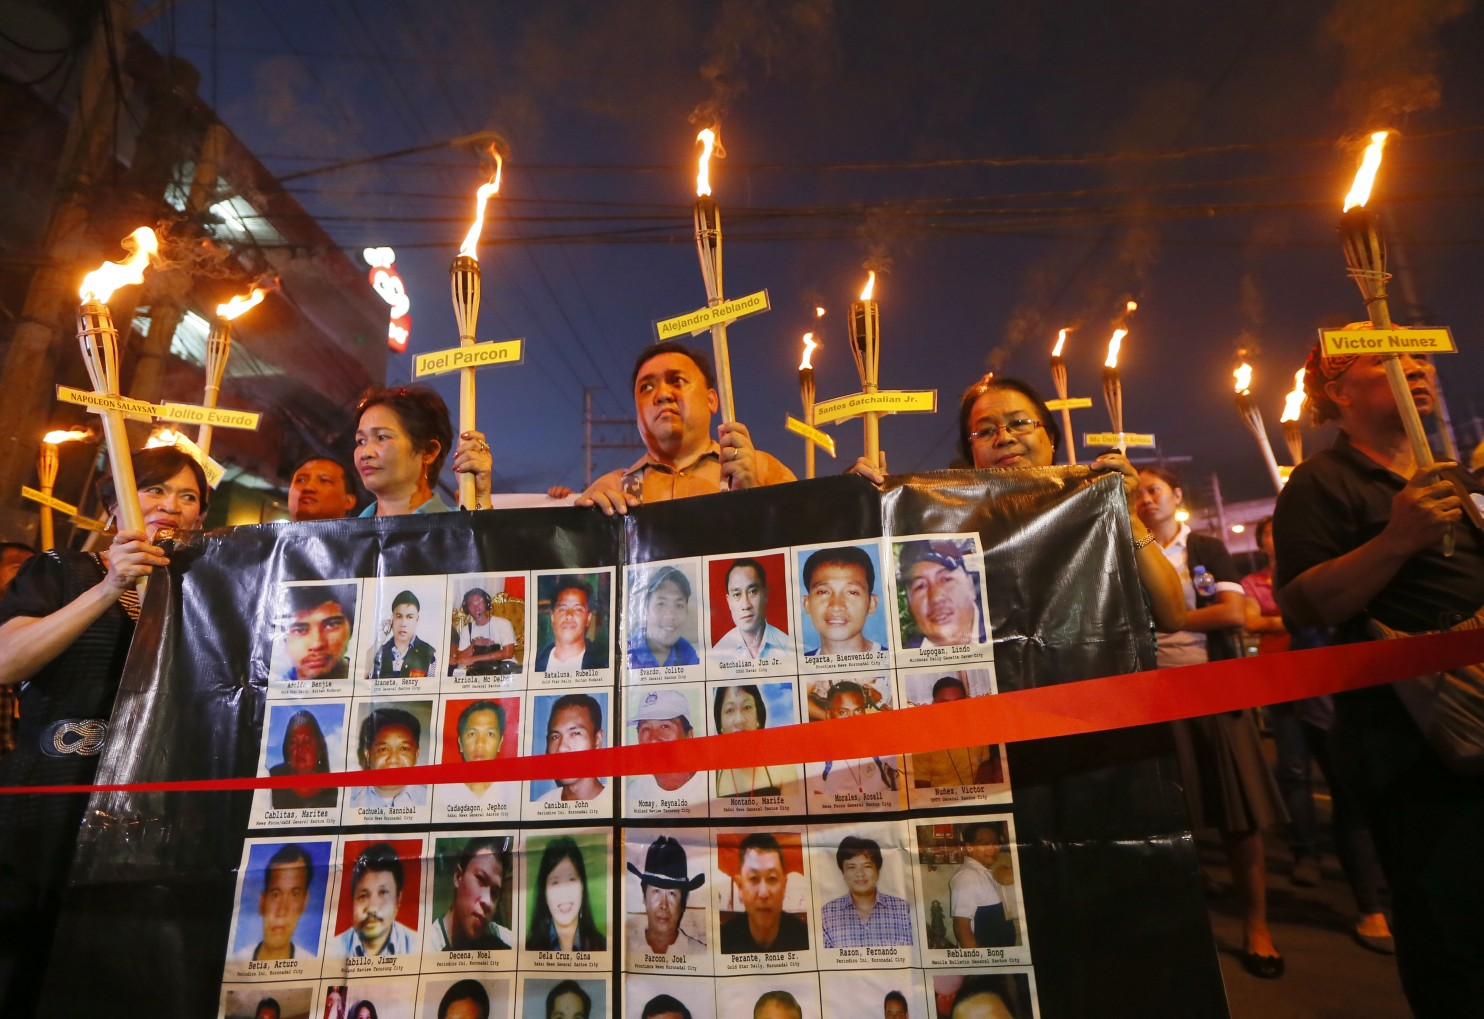 Relatives of the 32 journalists who were killed in Maguindanao province in southern Philippines six years ago, march towards the Presidential Palace last Monday, Nov. 23, 2015. (Source: Washington Post/photo by Bullit Marquez/Associated Press).